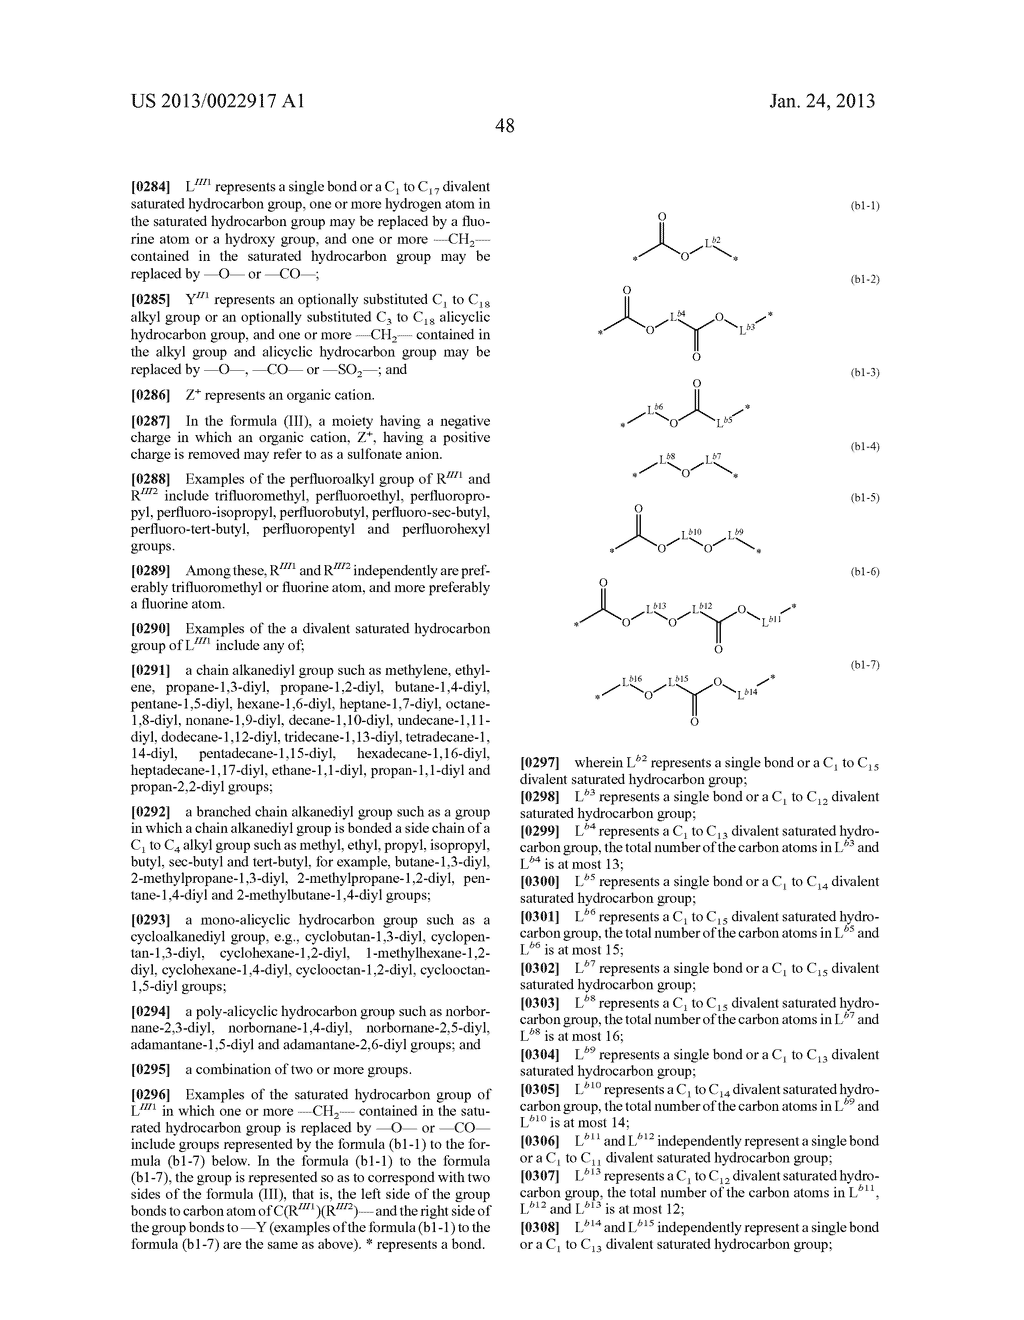 RESIST COMPOSITION AND METHOD FOR PRODUCING RESIST PATTERN - diagram, schematic, and image 49